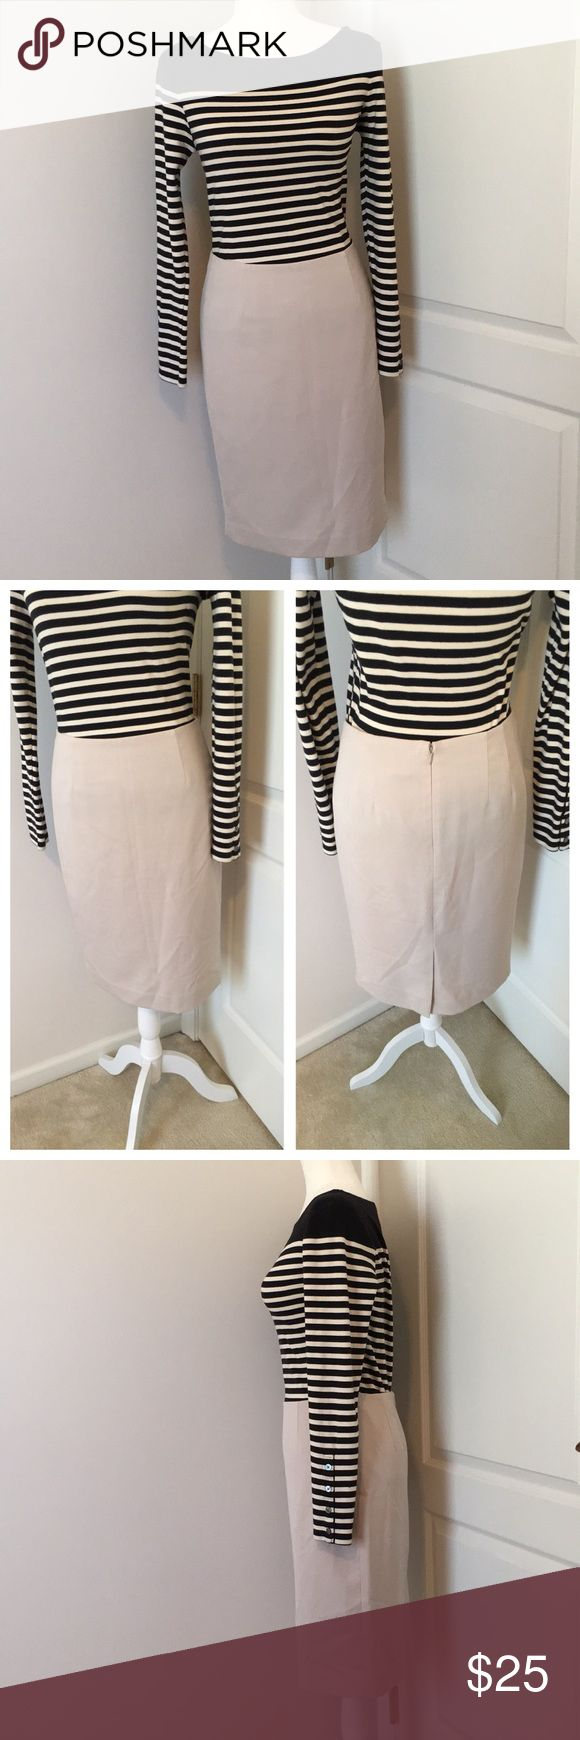 """NWT! AK by Anne Klein Pencil Skirt New with tags! Pencil skirt has darting all over and is fully lined. Made of 76% Polyester, 22% Viscose and 2% Elastane. Lining is 100% Polyester. Zipper and hook and eye closure in the back. Measures 14"""" across at waist and is almost 23"""" long from top of waist to bottom hem. Has two tiny holes on top front left side as shown in last pic-price reflects damage. Top available for sale in separate listing. Anne Klein Skirts Pencil"""